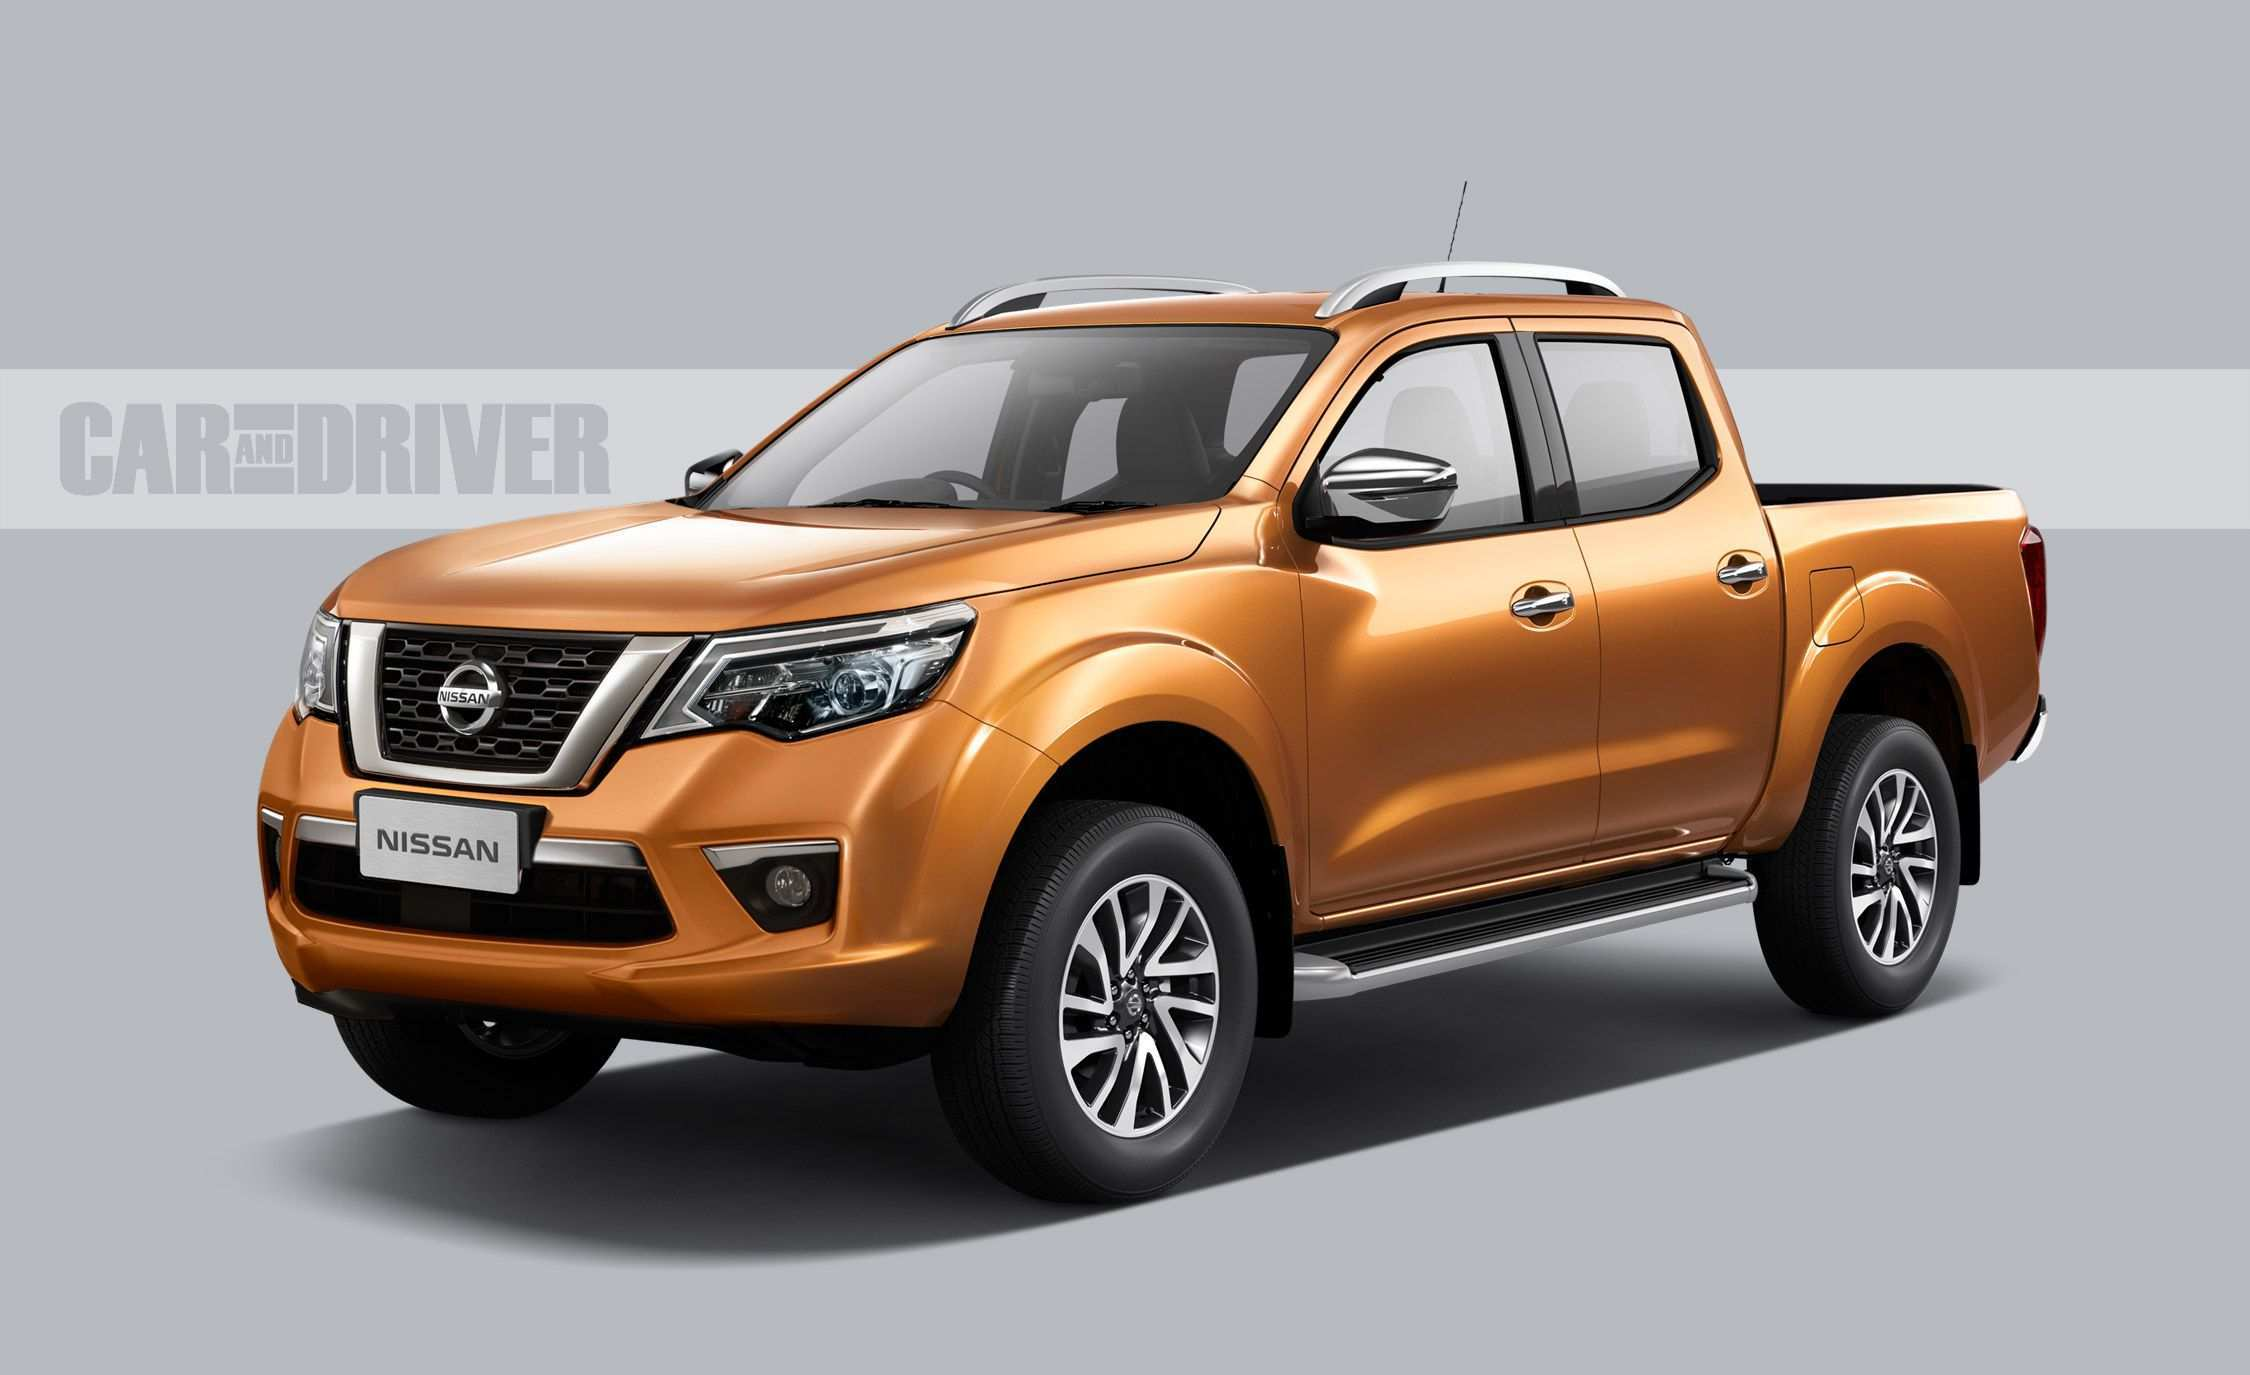 12 New 2019 Nissan Frontier Release Date First Drive with 2019 Nissan Frontier Release Date